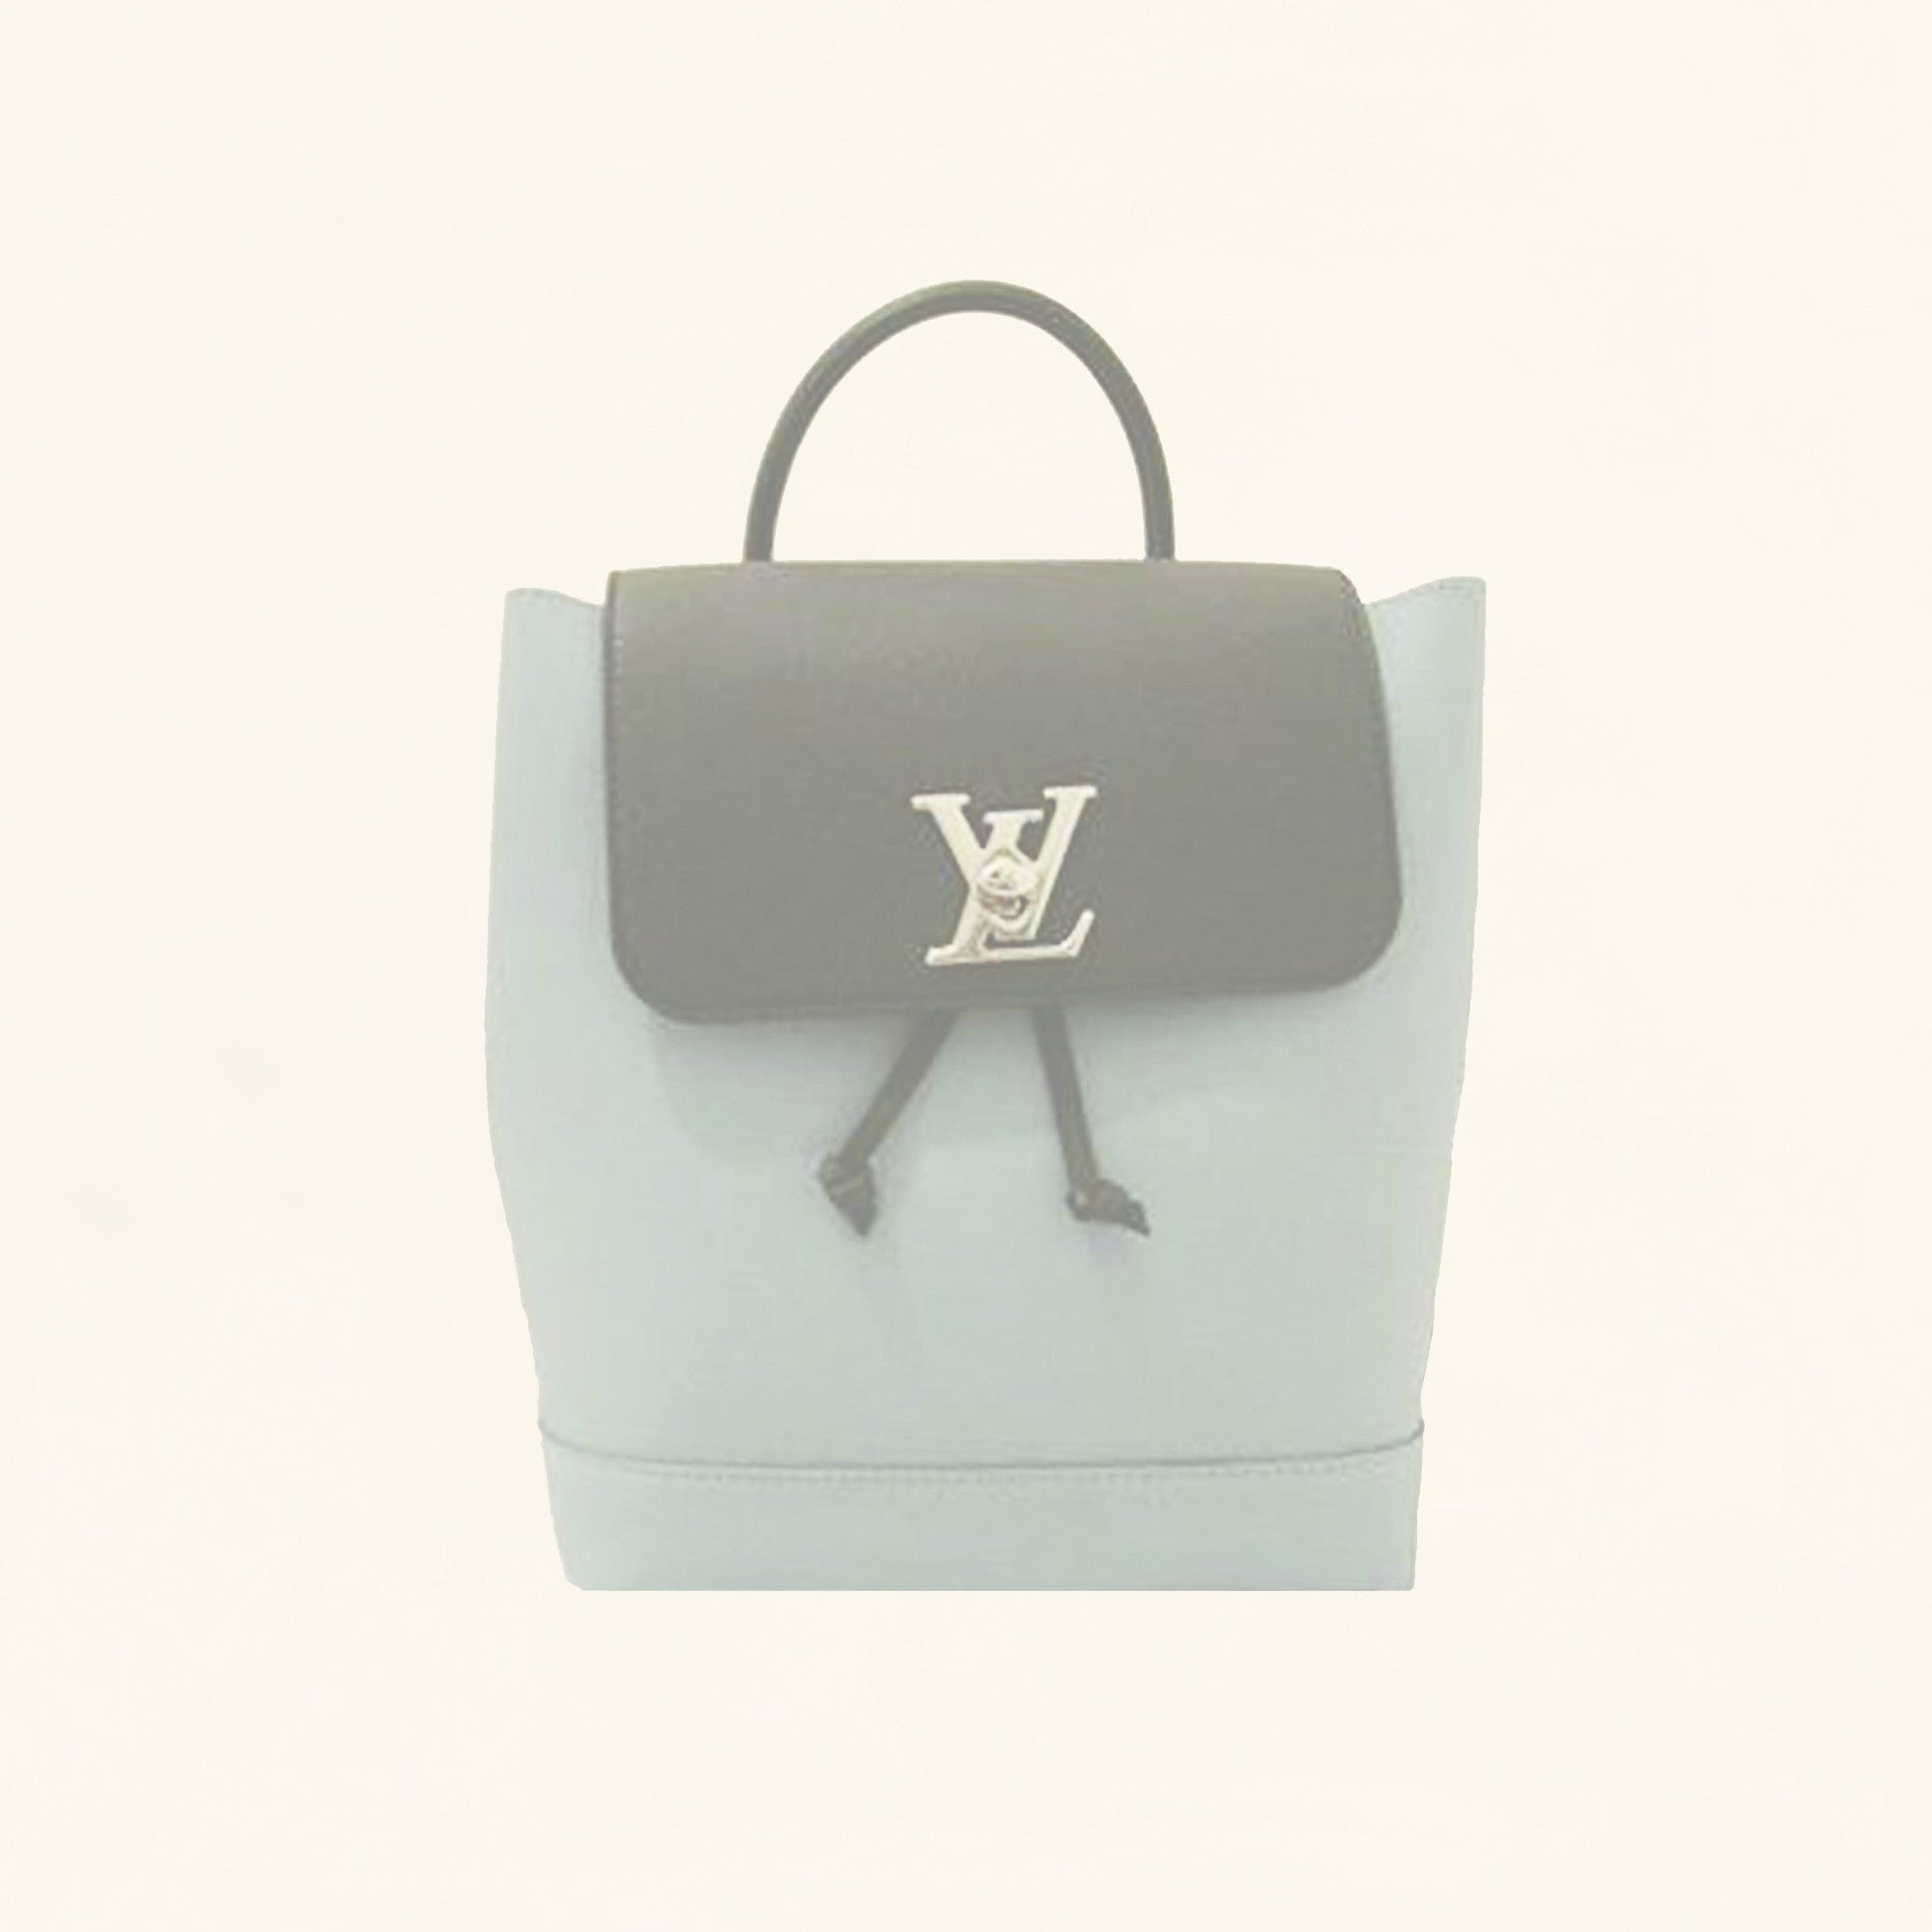 e10ebcd7c4f86 Louis Vuitton | Calfskin Lockme Backpack | Pastel Baby Blue - The-Collectory